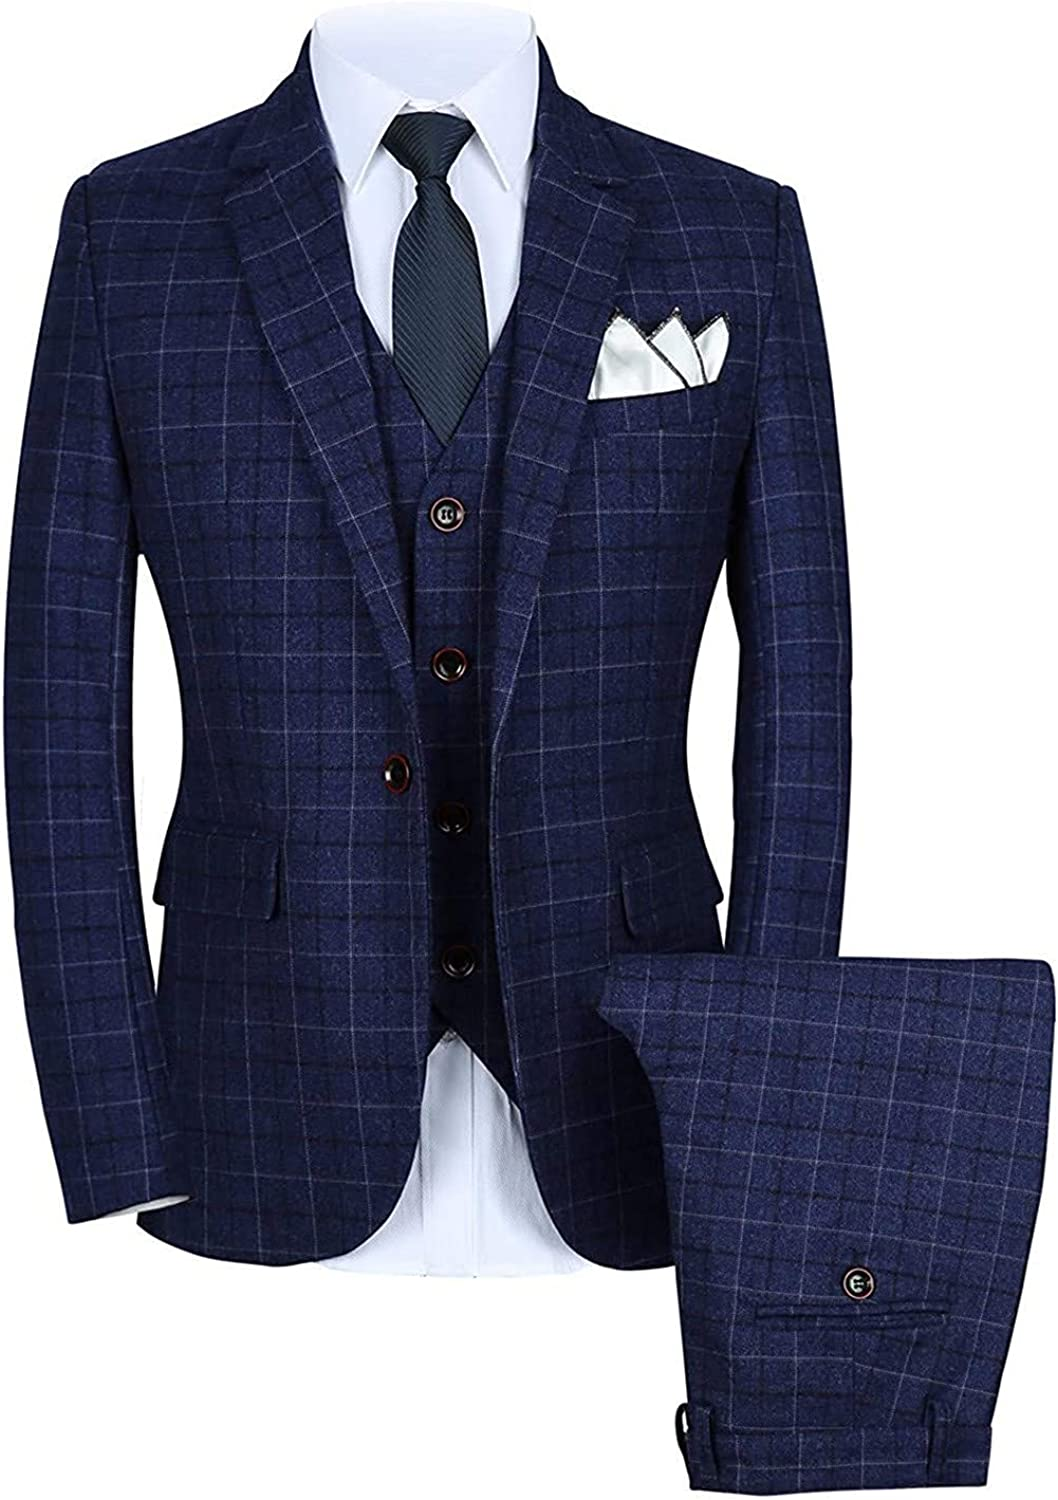 Wemaliyzd Men's 3 Pieces Formal Checkered Suit Centre Vent Single Breasted Vest Pants